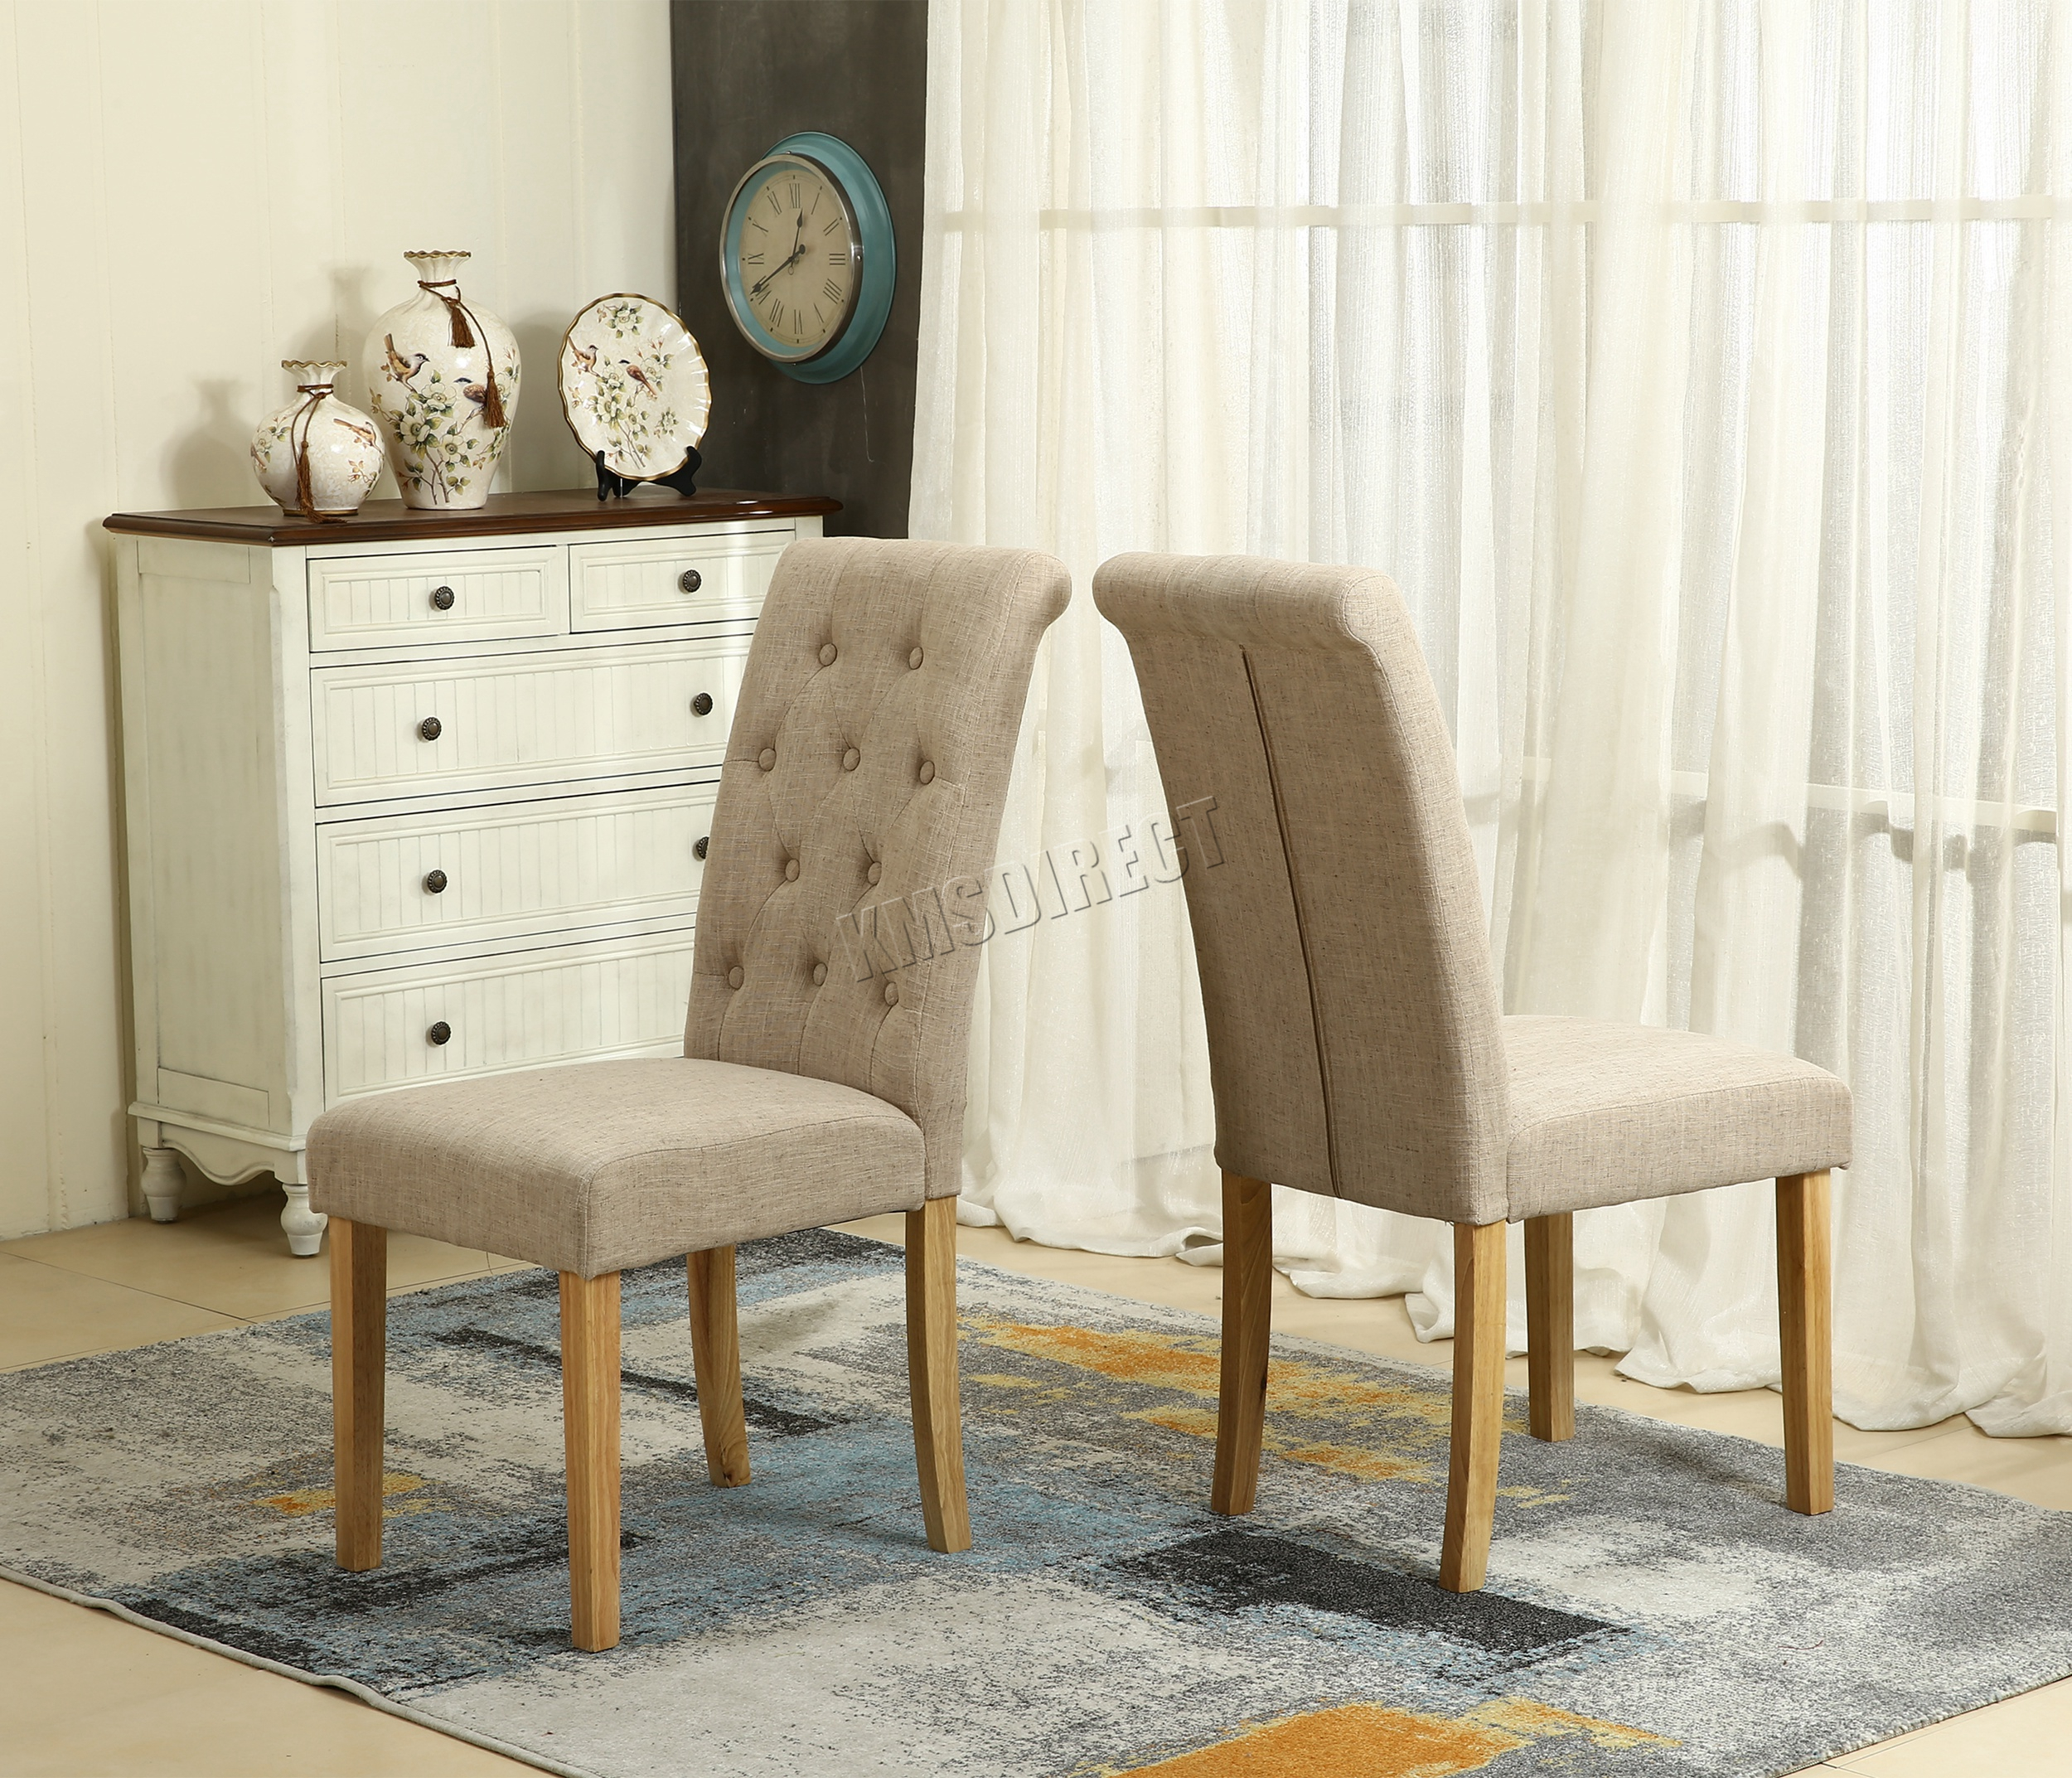 Cream Dining Room Chairs: WestWood Cream Linen Fabric Dining Chairs Scroll High Back